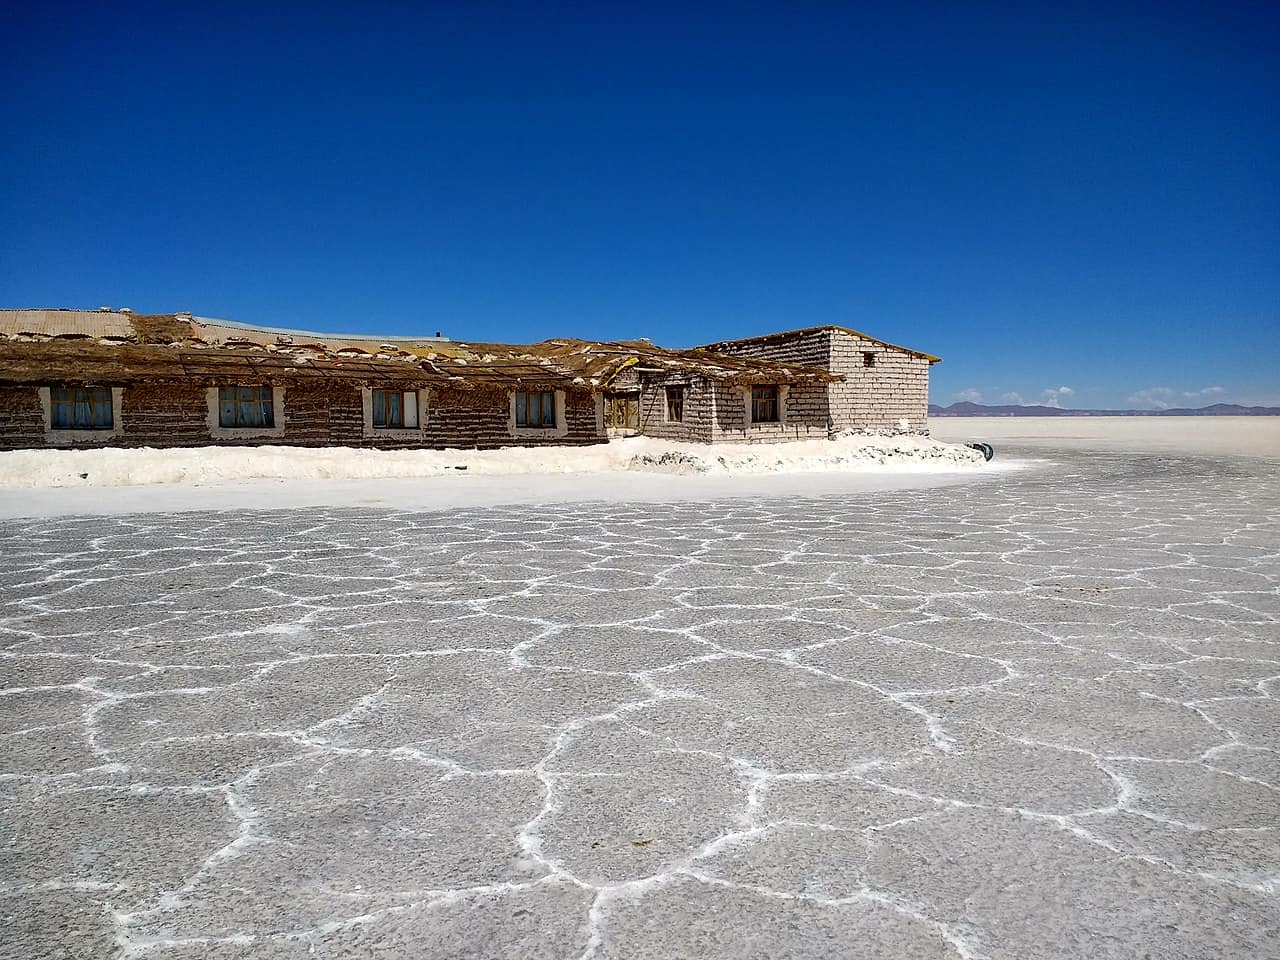 80 Surprising Bolivia Facts That You Never Expected